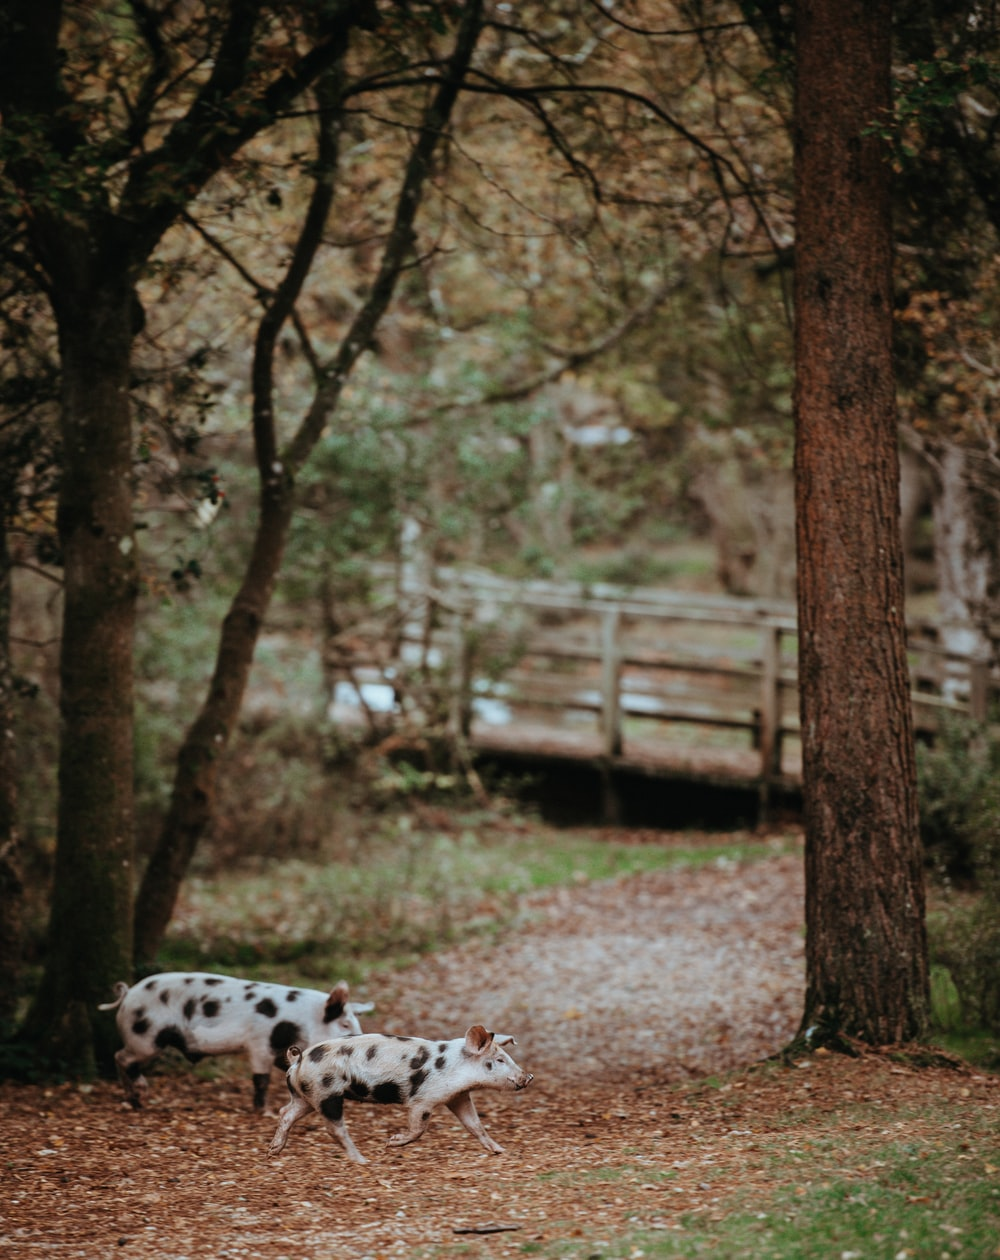 two white-and-black pigs walking near trees during daytime